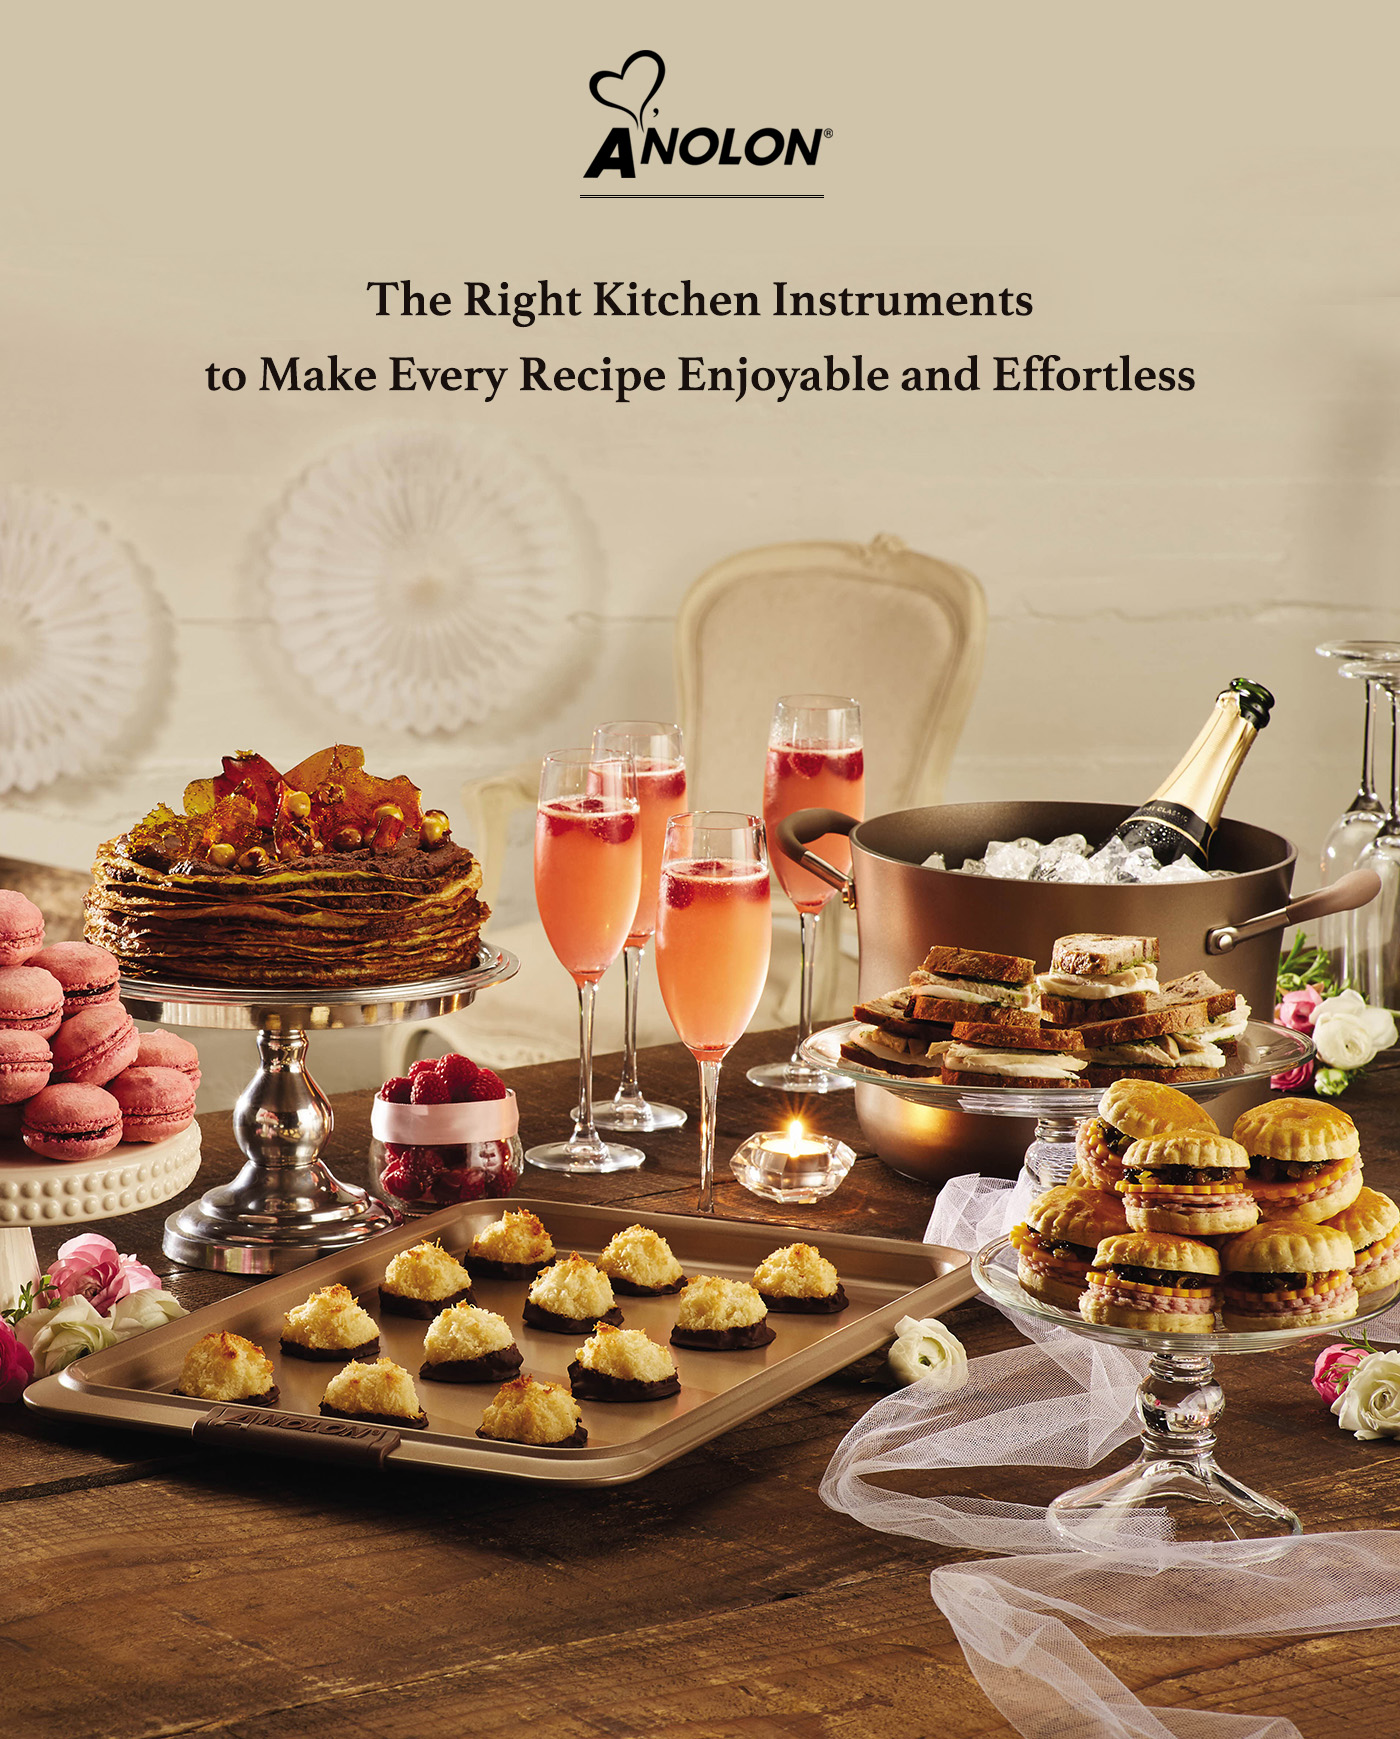 The Right Kitchen Instruments to Make Every Recipe Enjoyable with Anolon